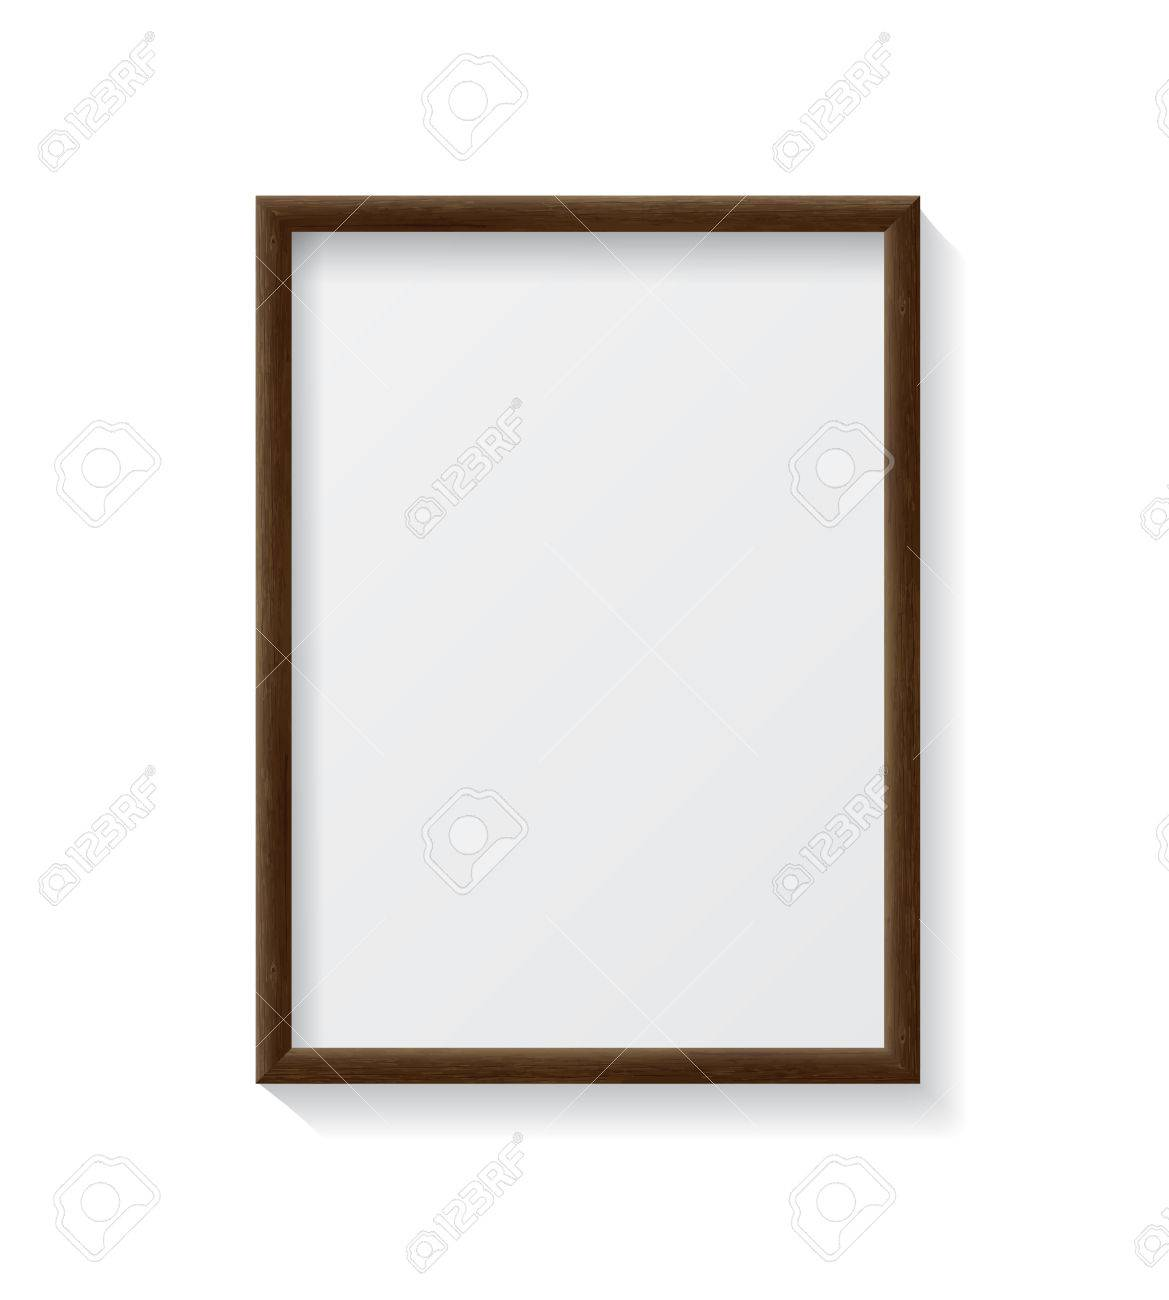 Realistic Dark Wood Blank Picture Frame, Hanging On A White Wall ...